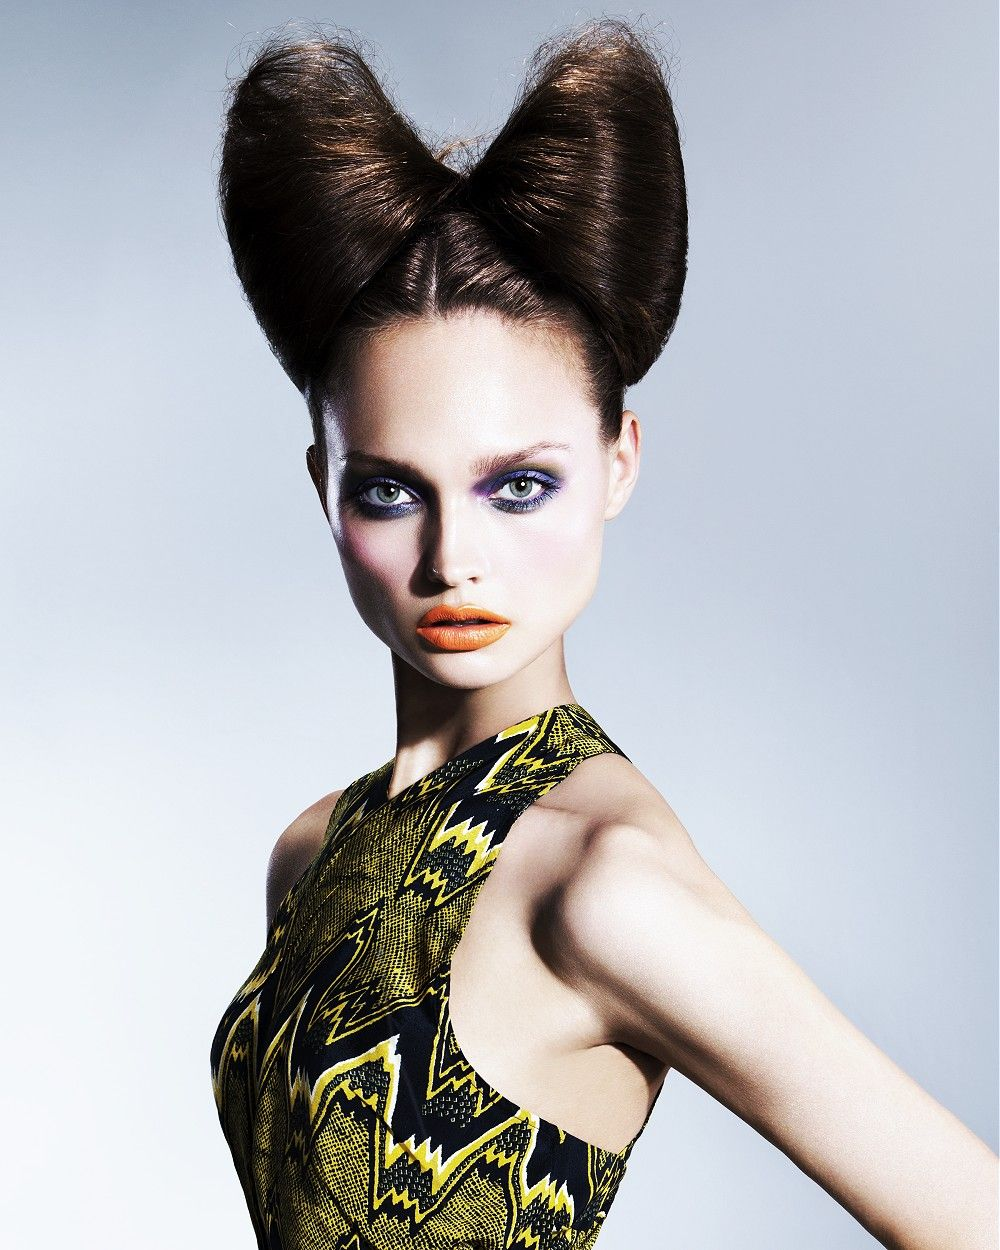 Large image of Long Brown straight hairstyles provided by Robert John. Picture Number 24603